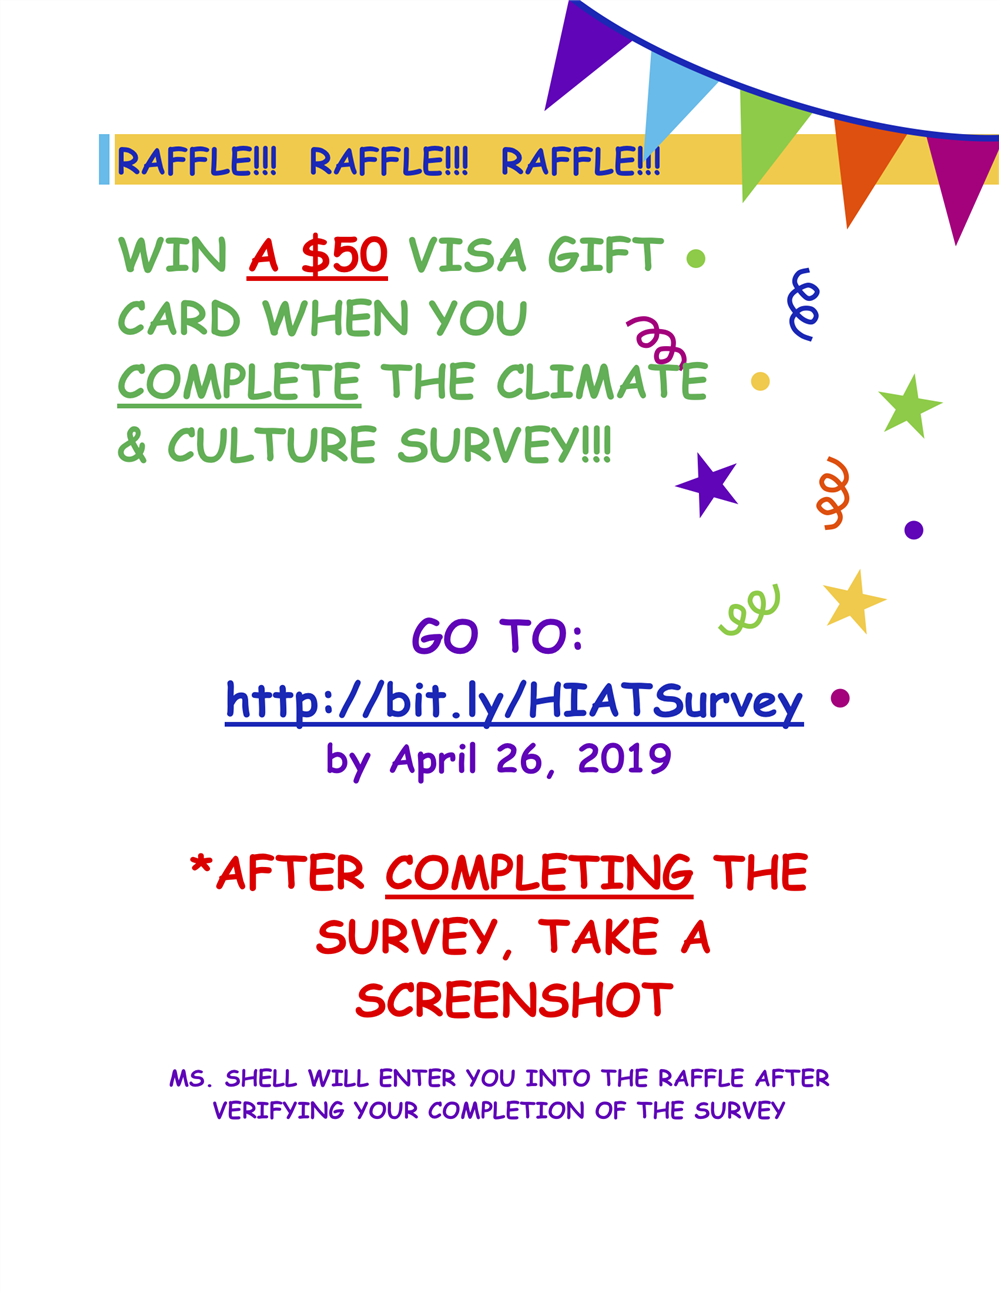 It's not too late to take the HIAT Climate & Culture Survey! Enter to win a $50 Gift Card.